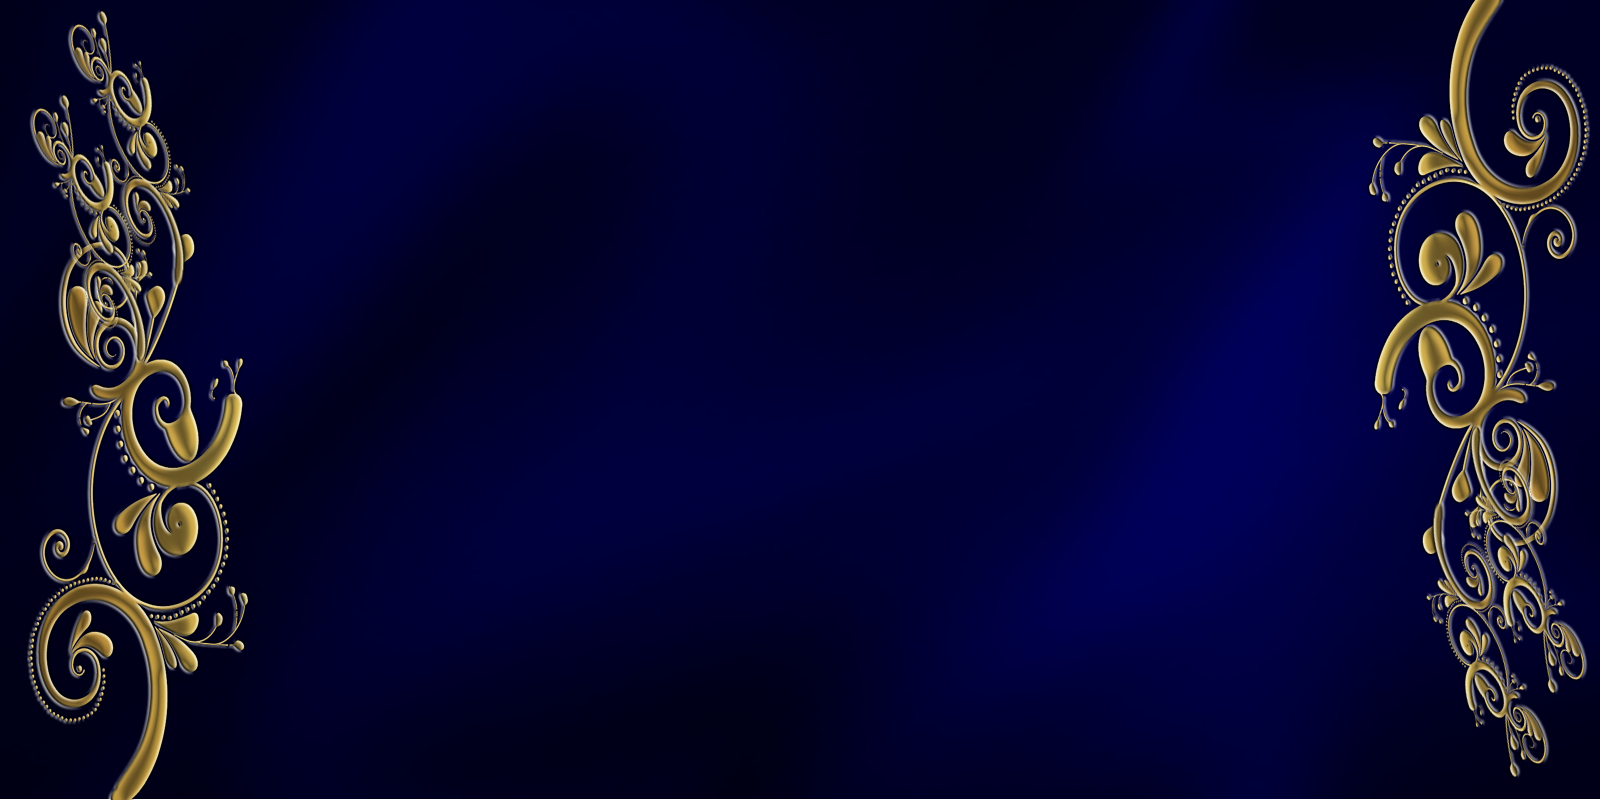 Navy Blue And Gold Wallpaper Navy blue gold 1600x800